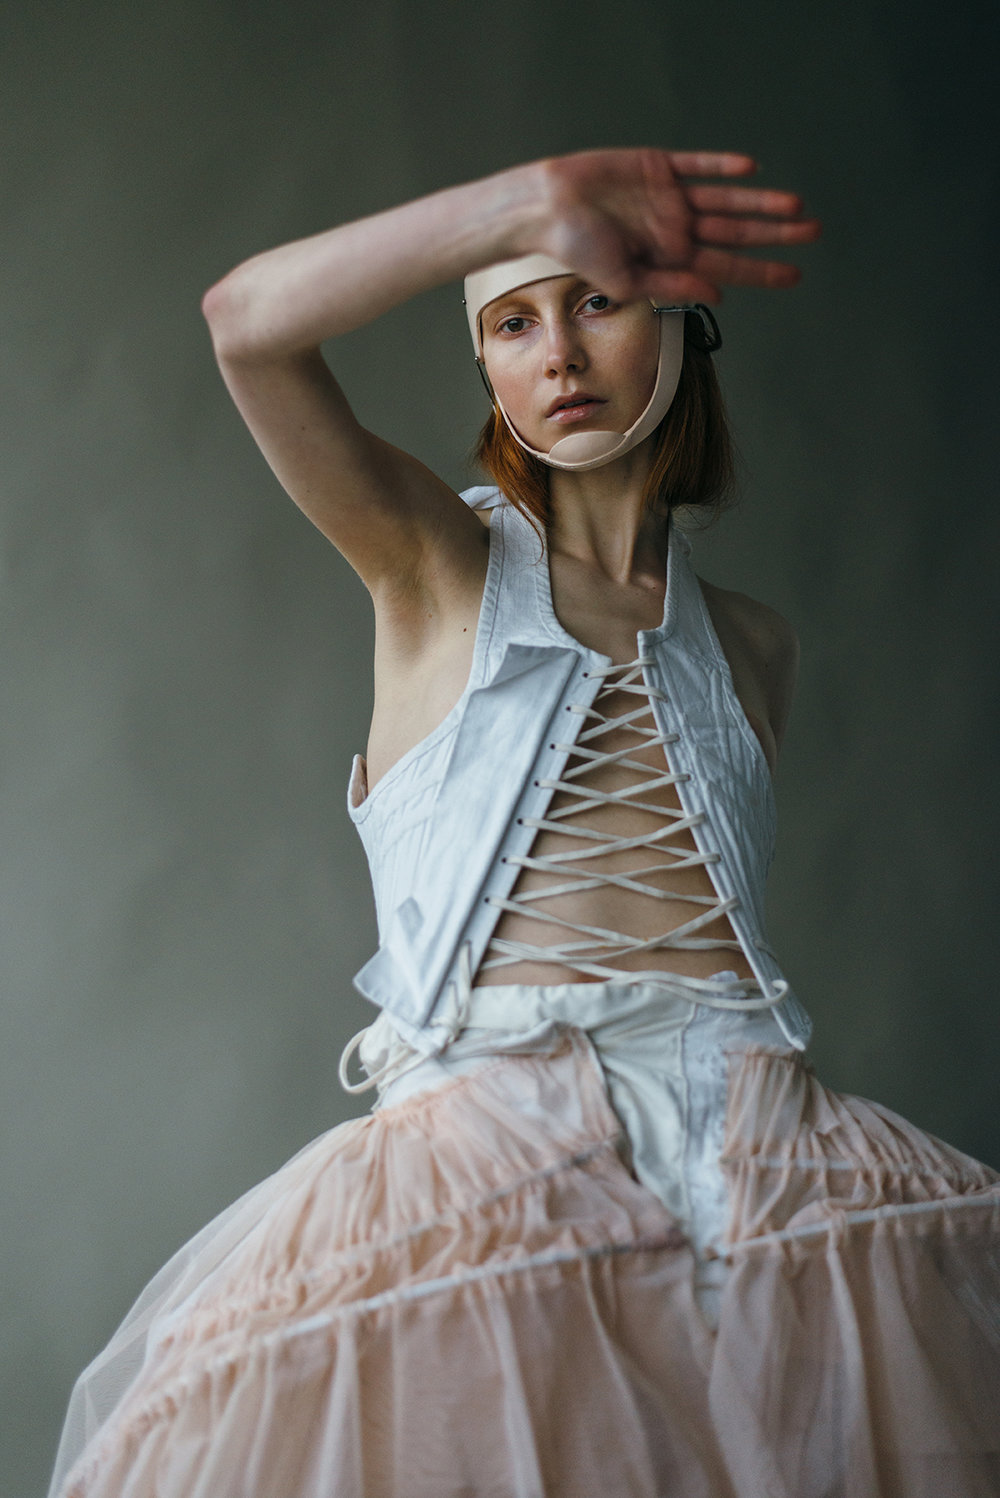 Vogue Italia 'Body Politics' | michelle marshall photography